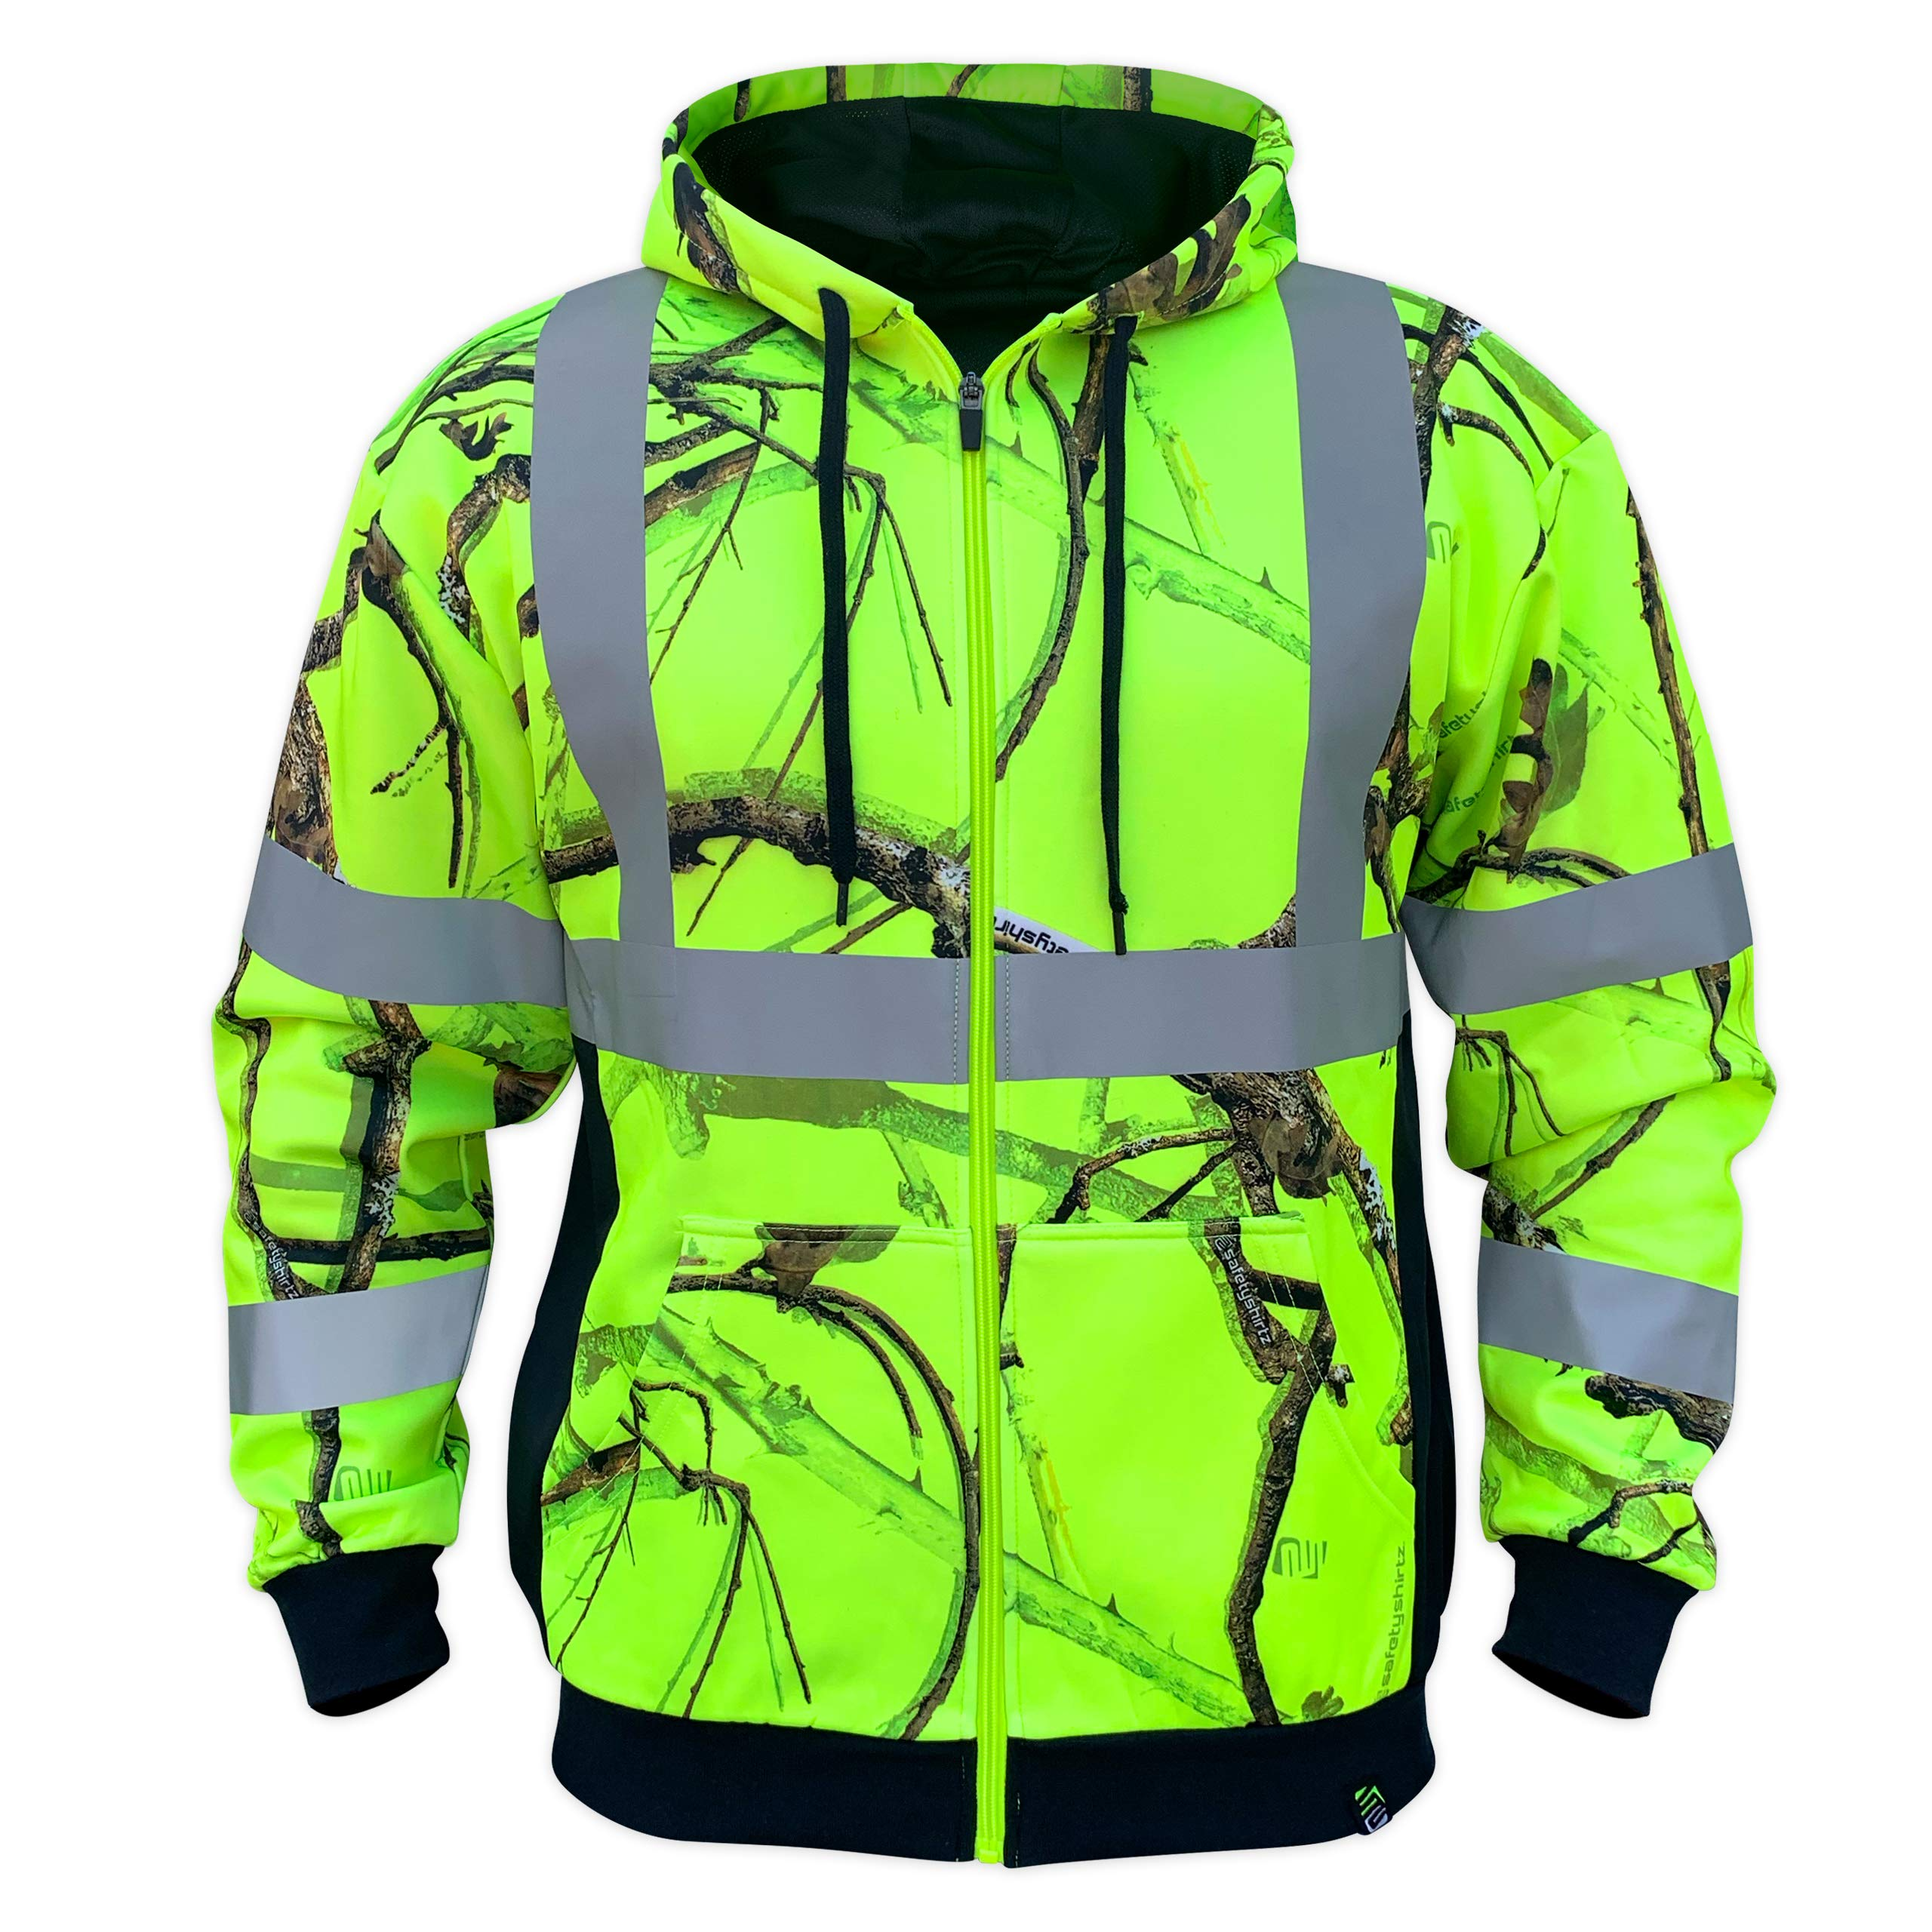 SafetyShirtz SS360 Backwoods Safety Zip-UP Hoody ANSI Class 3 2XL